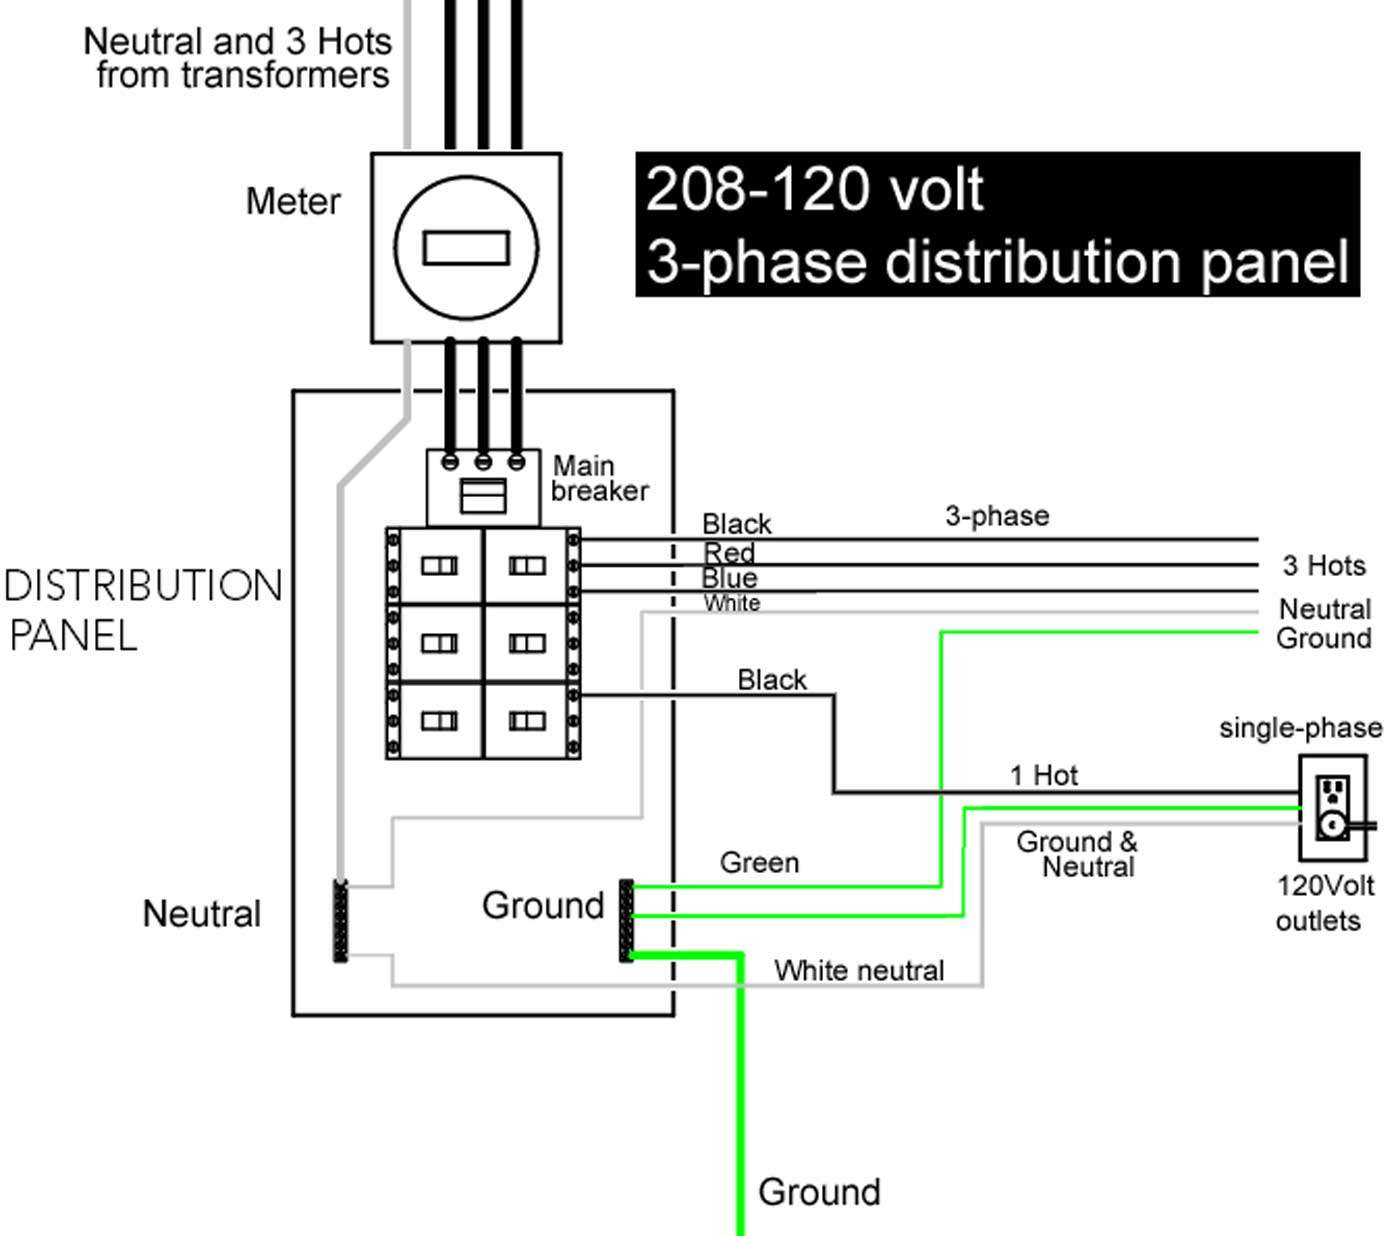 hight resolution of what is 208 voltslarger image example 3 phase distribution panel with 208 120 volt service